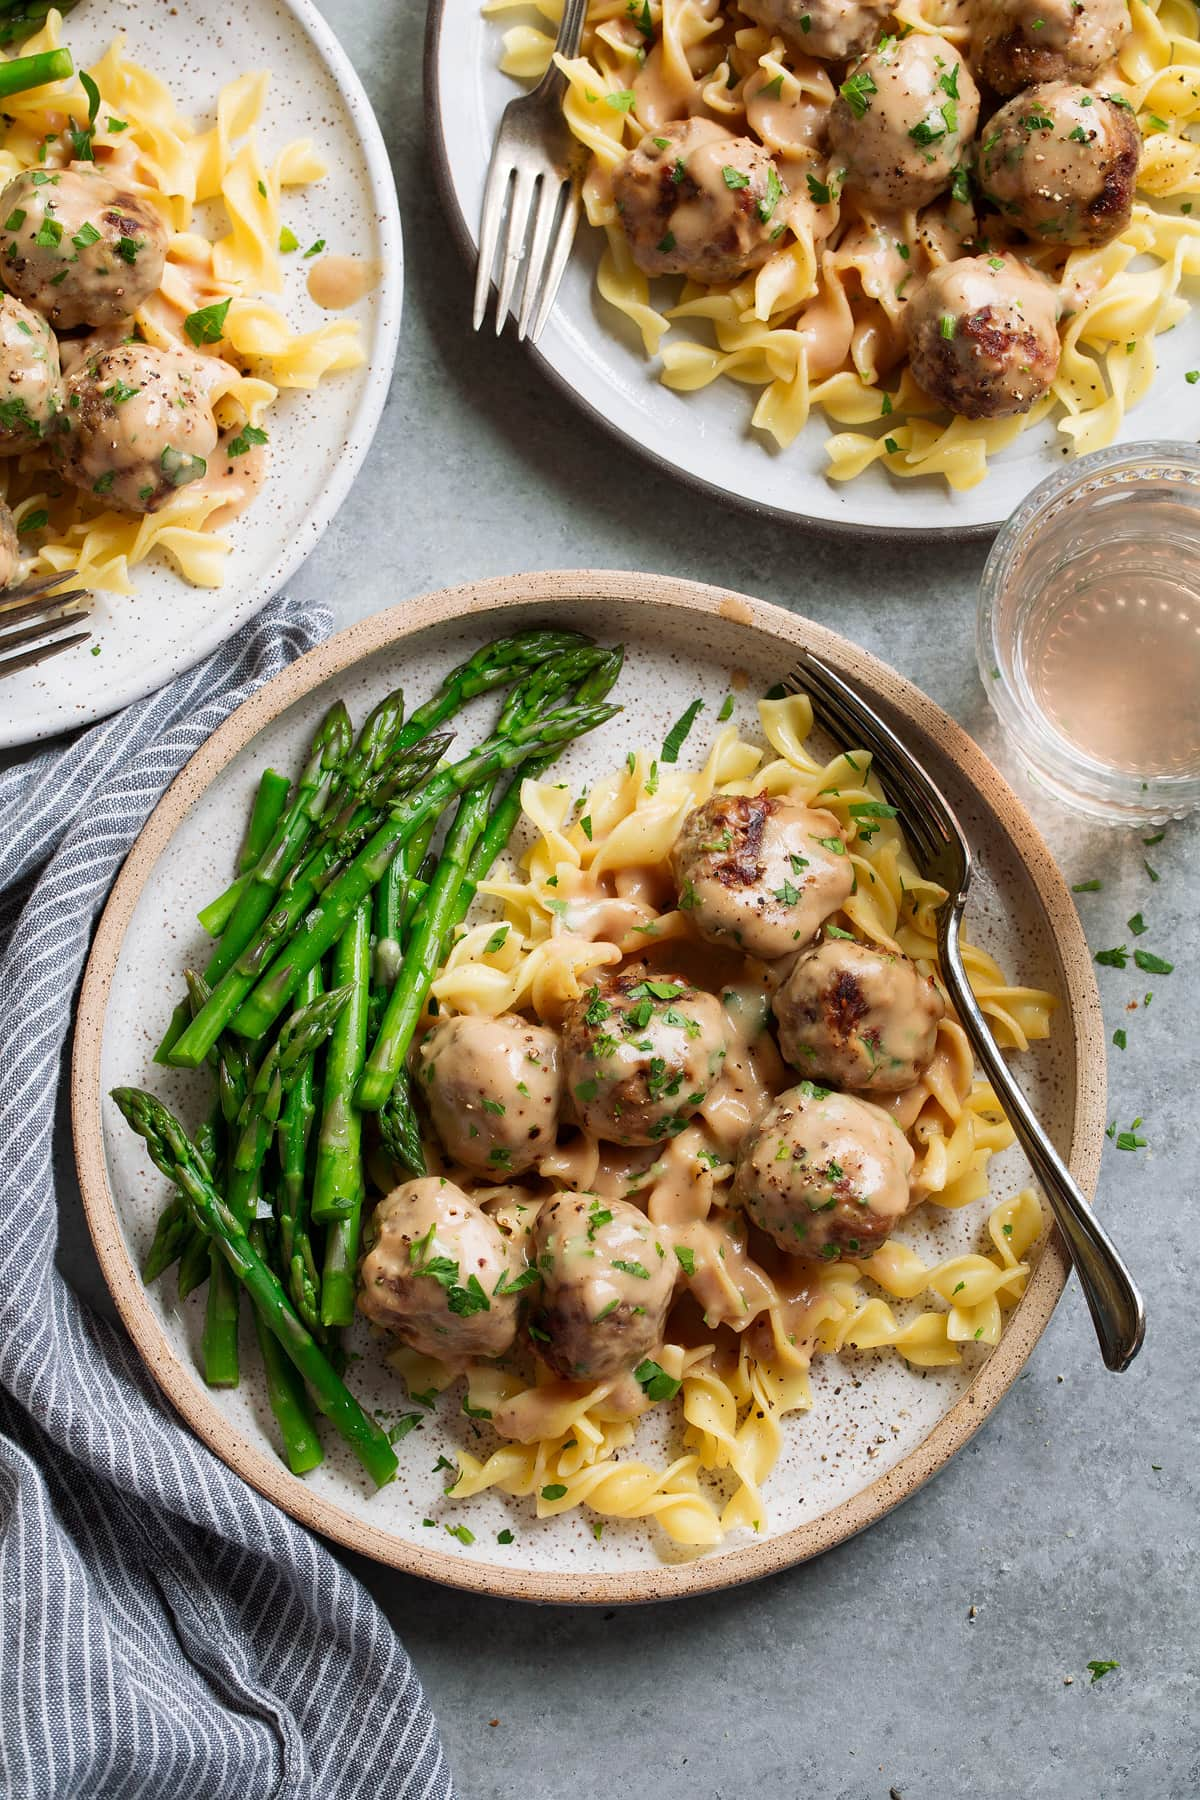 Three servings of Swedish meatballs on plates. Meatballs are laying over egg noodles and served with a side of steamed asparagus.